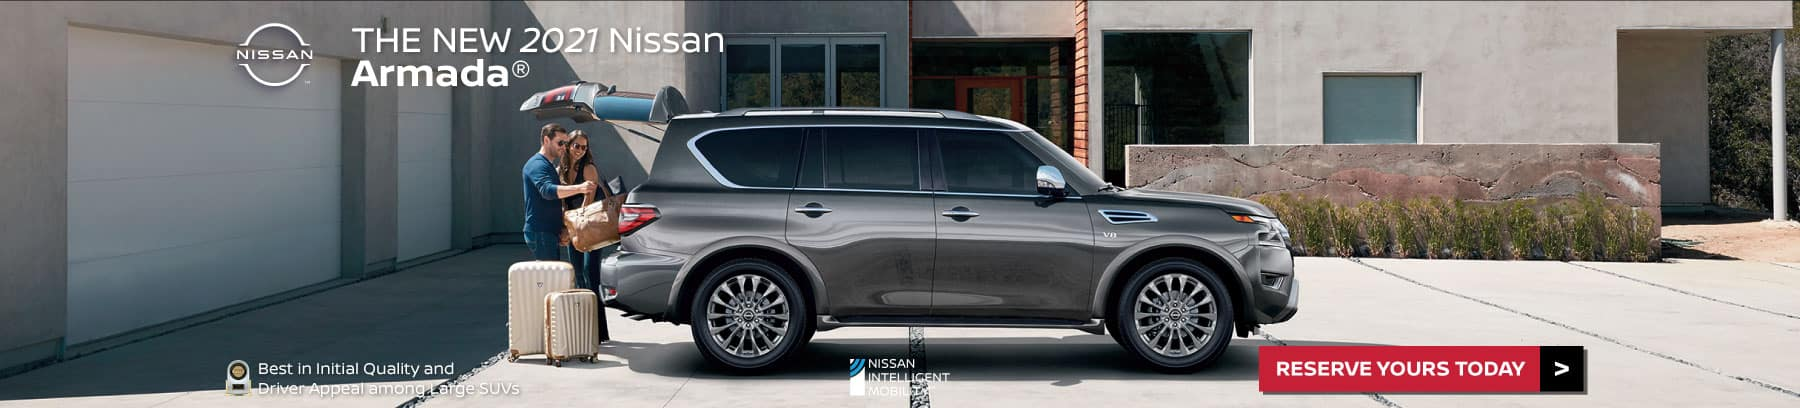 The new 2021 Nissan Armada